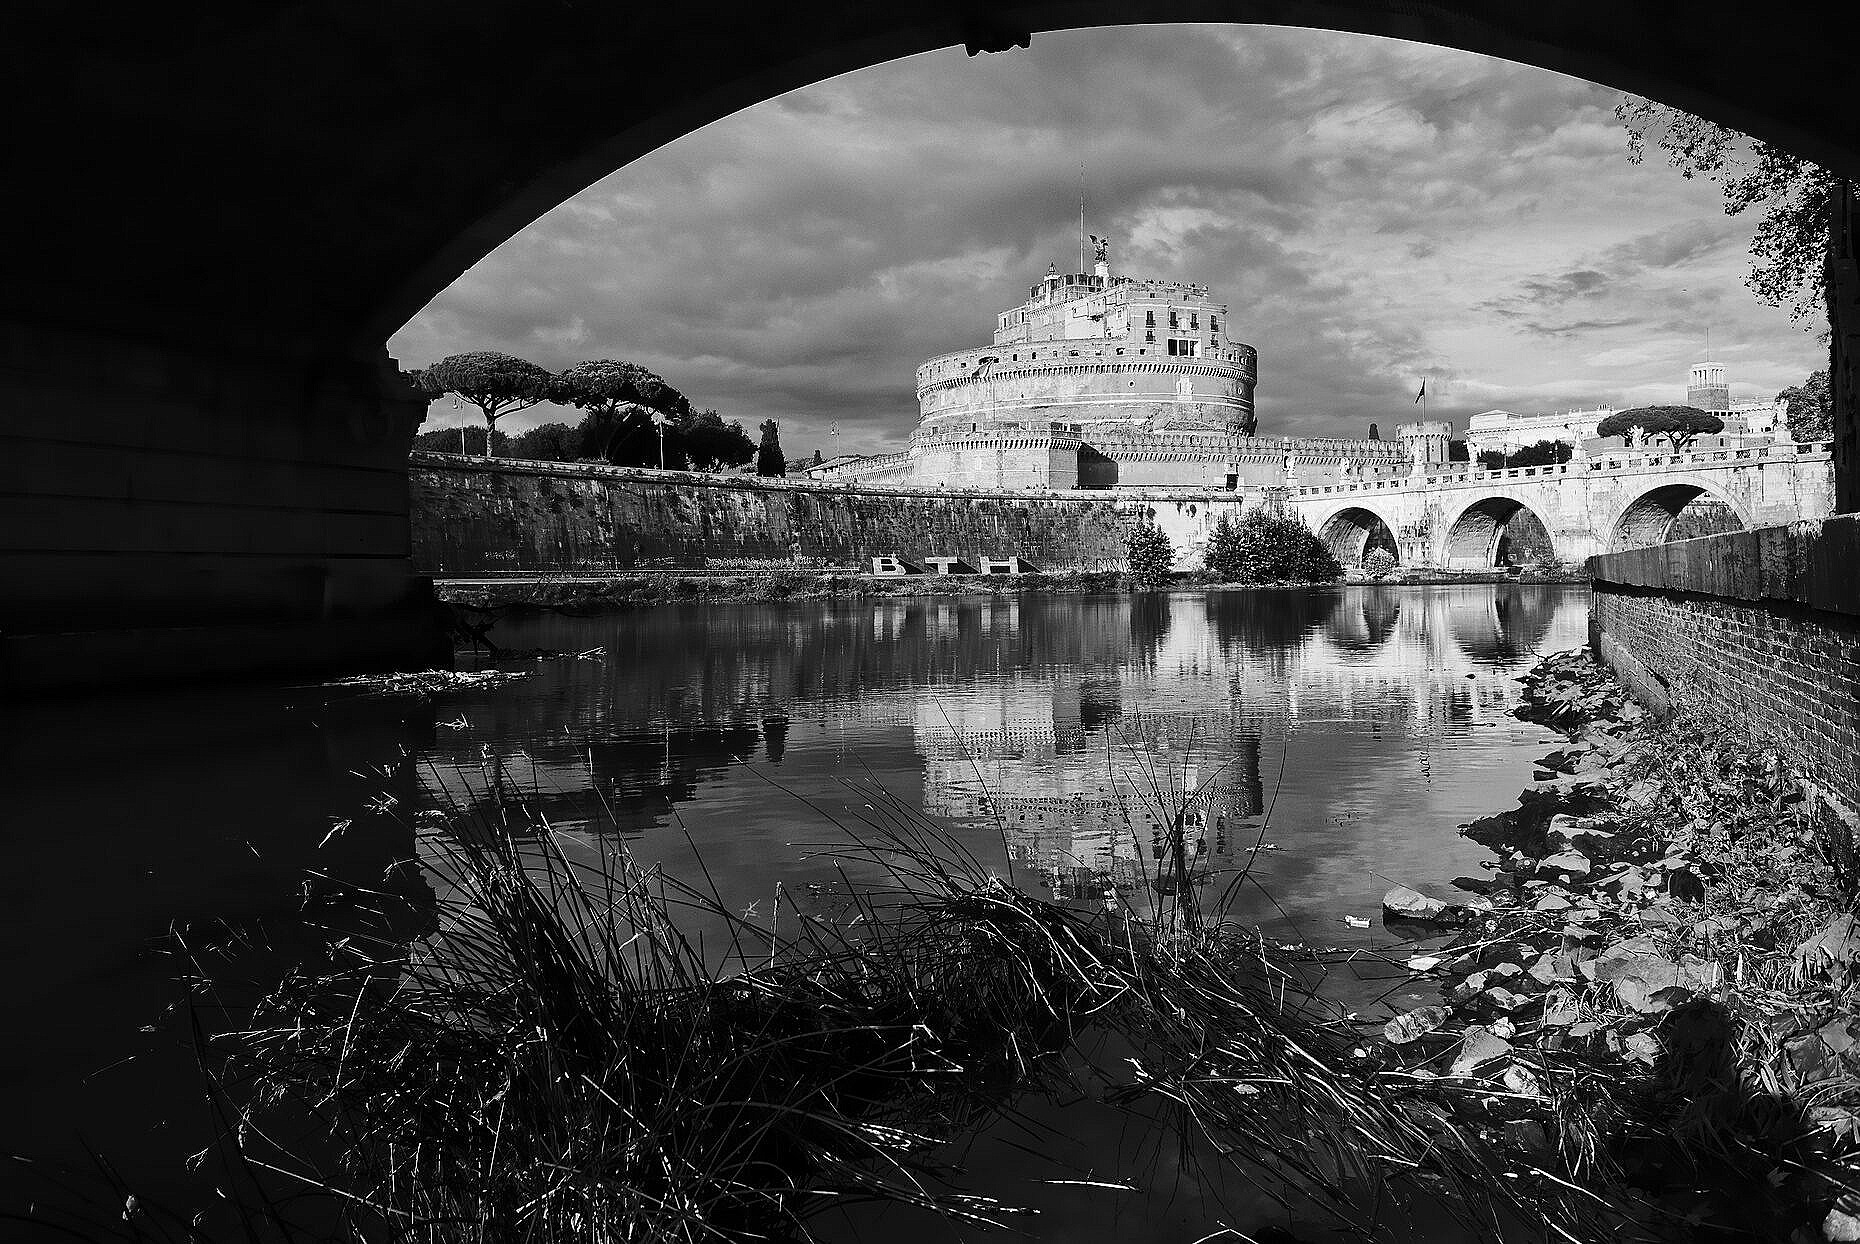 Castel Sant'Angelo in Rome seen from below the Ponte Vittorio Emanuele II on the Tiber river